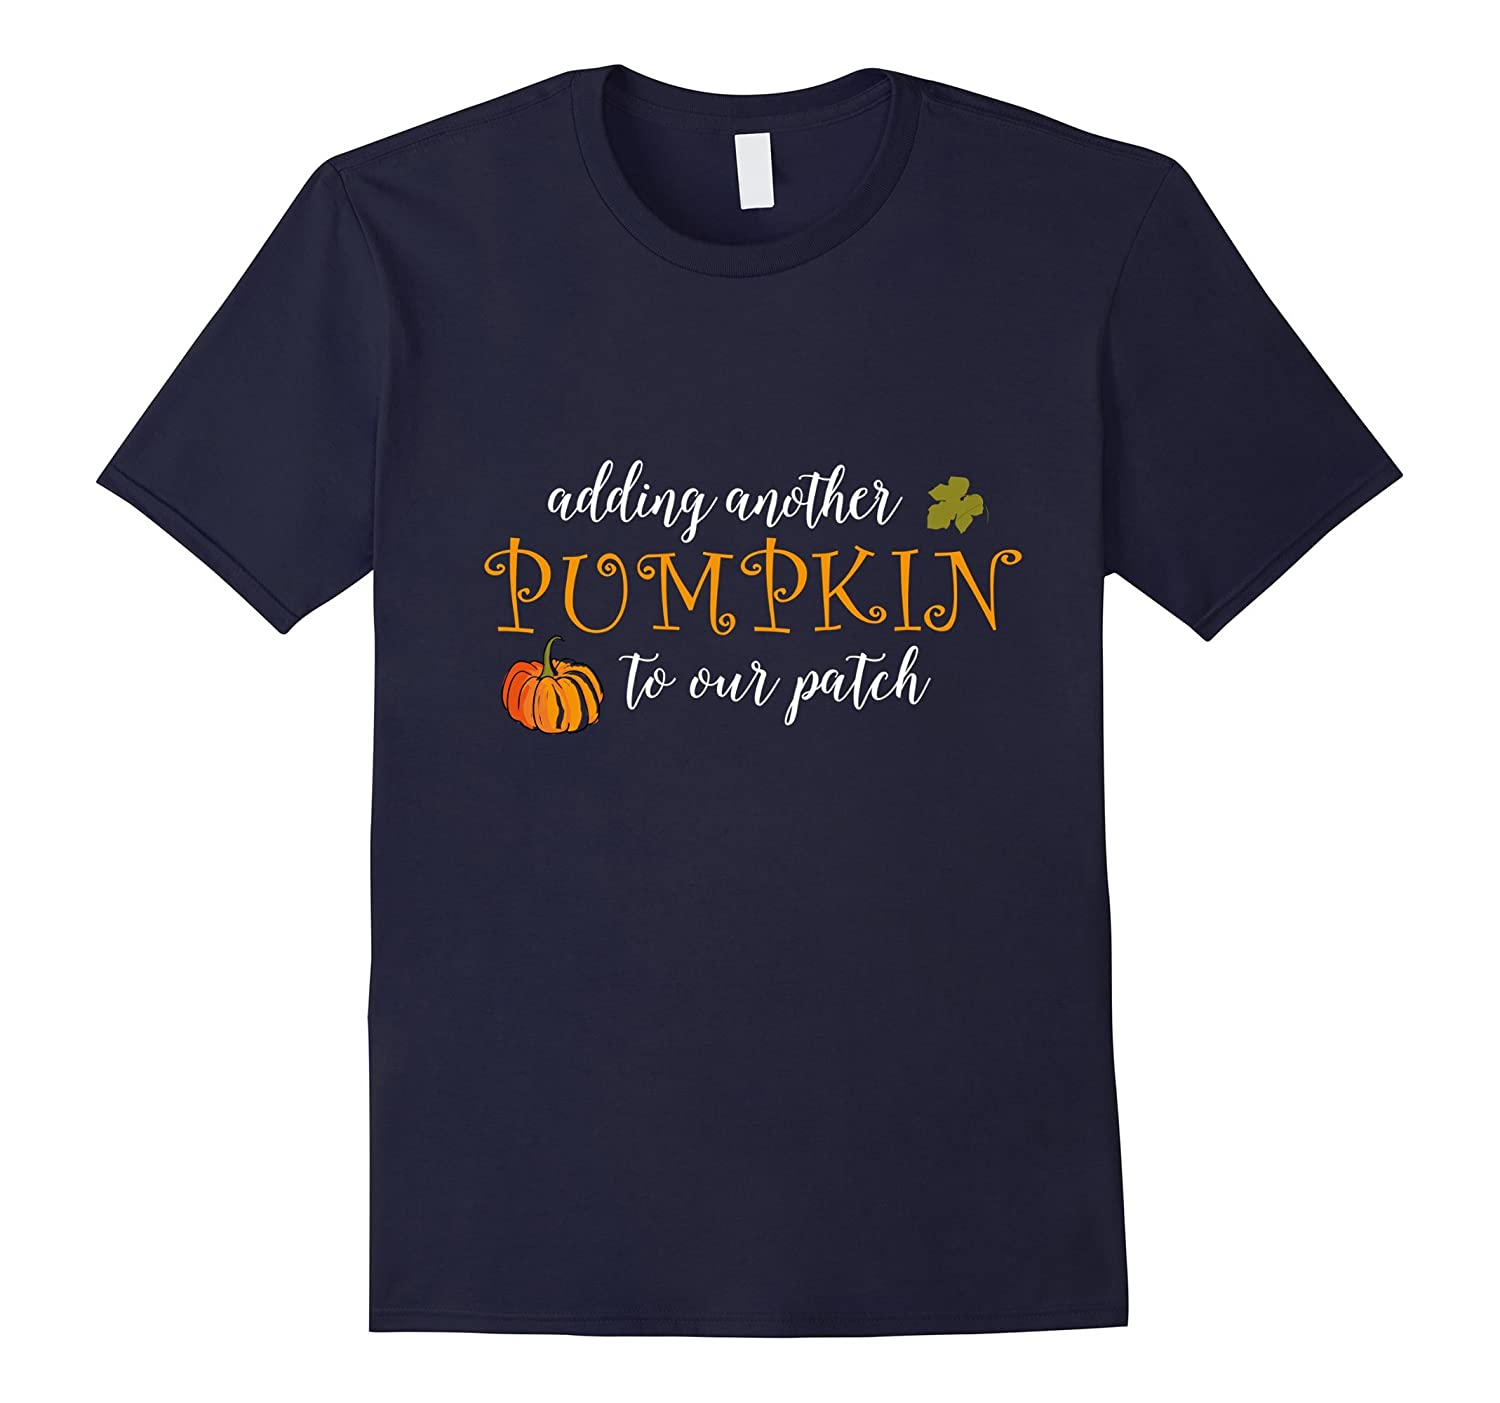 Adding Another Pumpkin to Our Patch Pregnancy Shirt-FL